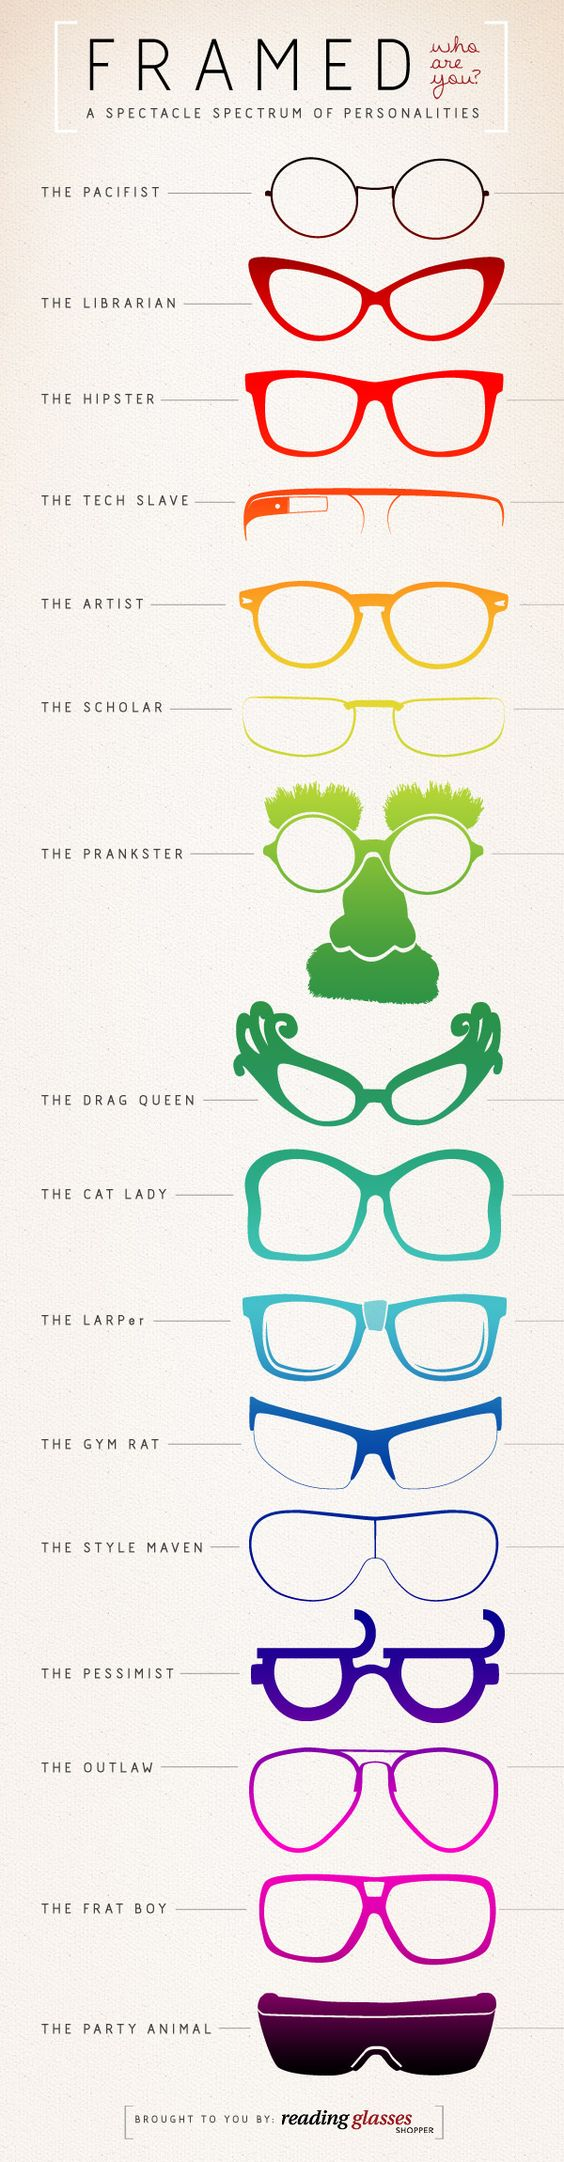 Framed: A spectacle spectrum of personas. Why yes, yes, I identify most with being a librarian 8)